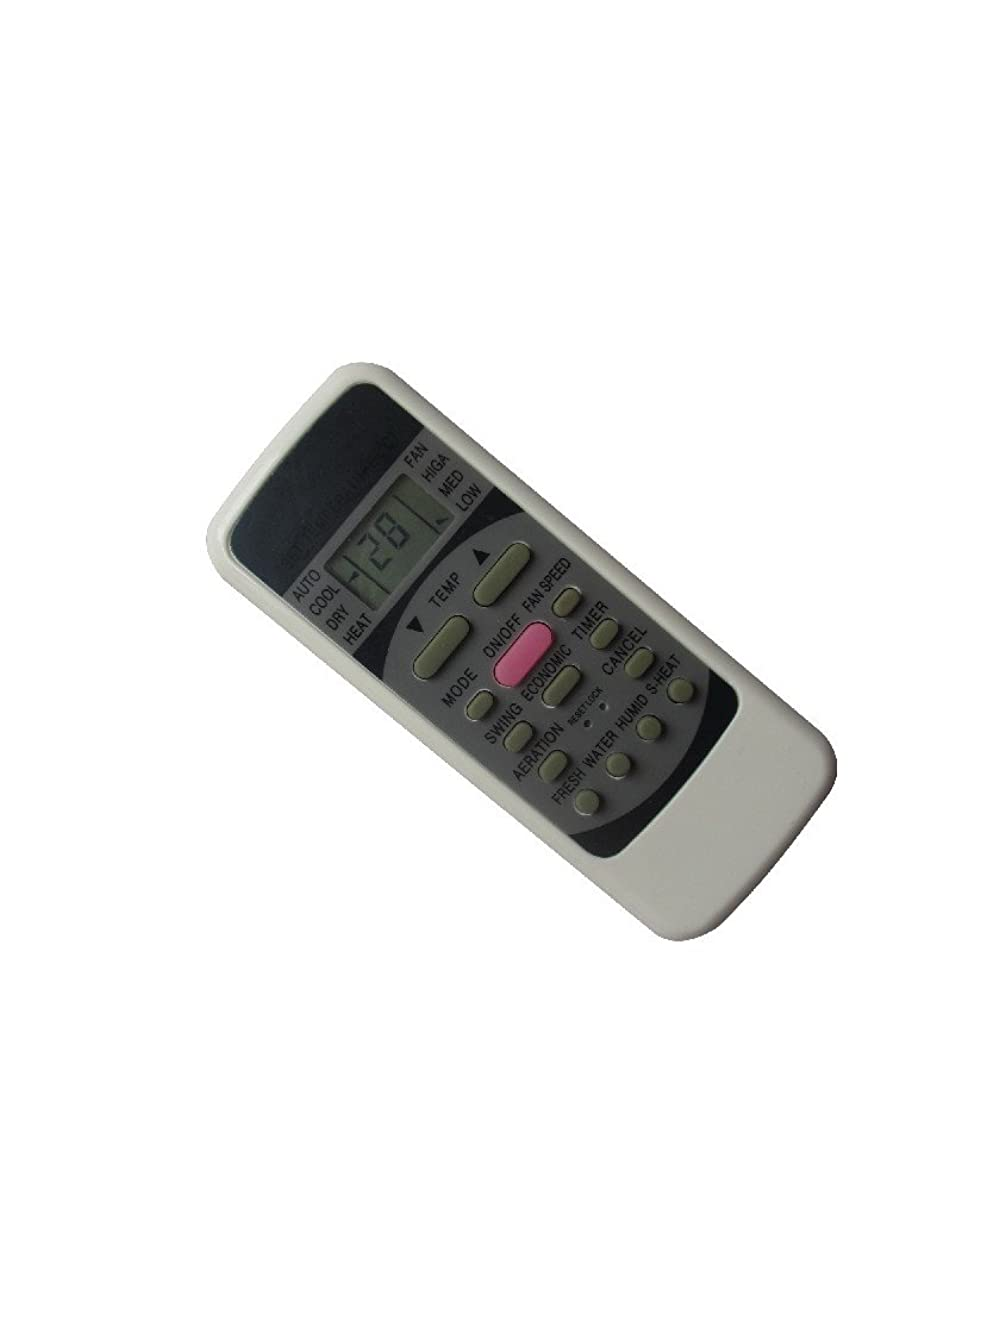 Hotsmtbang Replacement Remote Control For Senville SENL-09CD SENL-12CD SENL-18CD SENL-24CD AC Air Conditioner